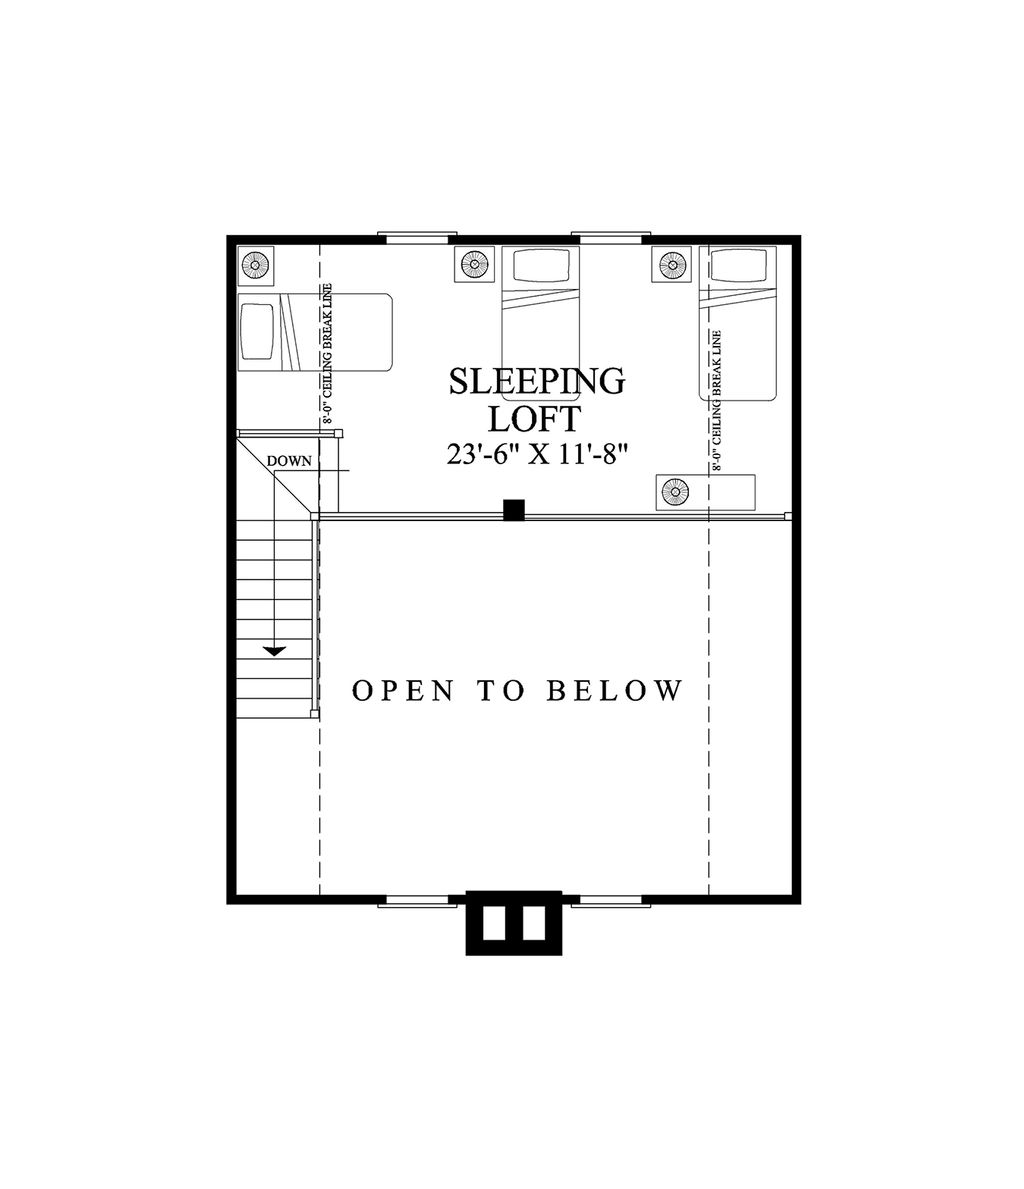 Cabin style house plan 2 beds 2 baths 1727 sq ft plan for Www floorplans com